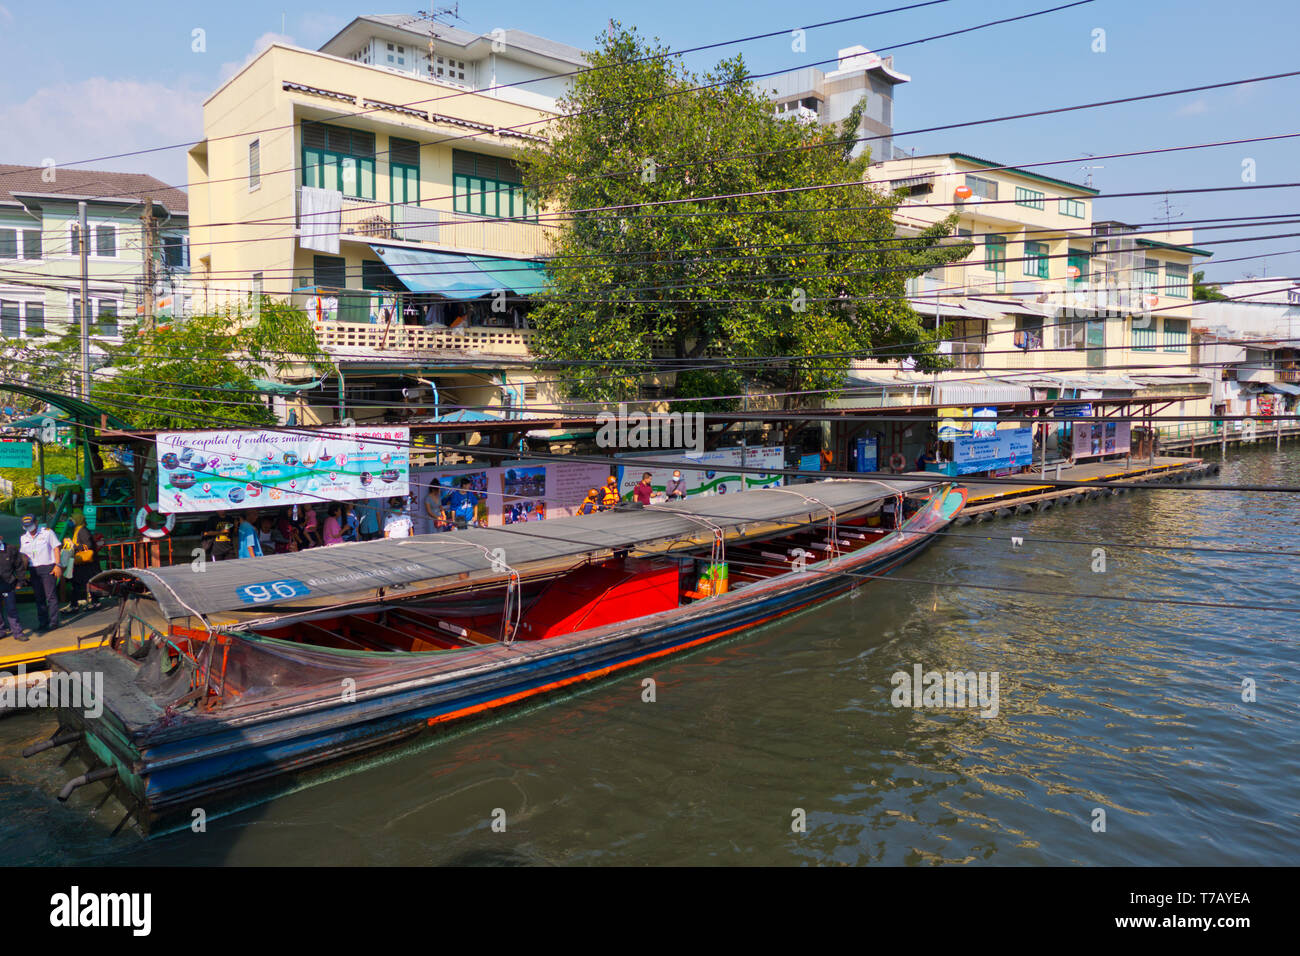 Phanfa Leelard Pier, Khlong Suen Saeb, Bangkok, Thailand Stock Photo